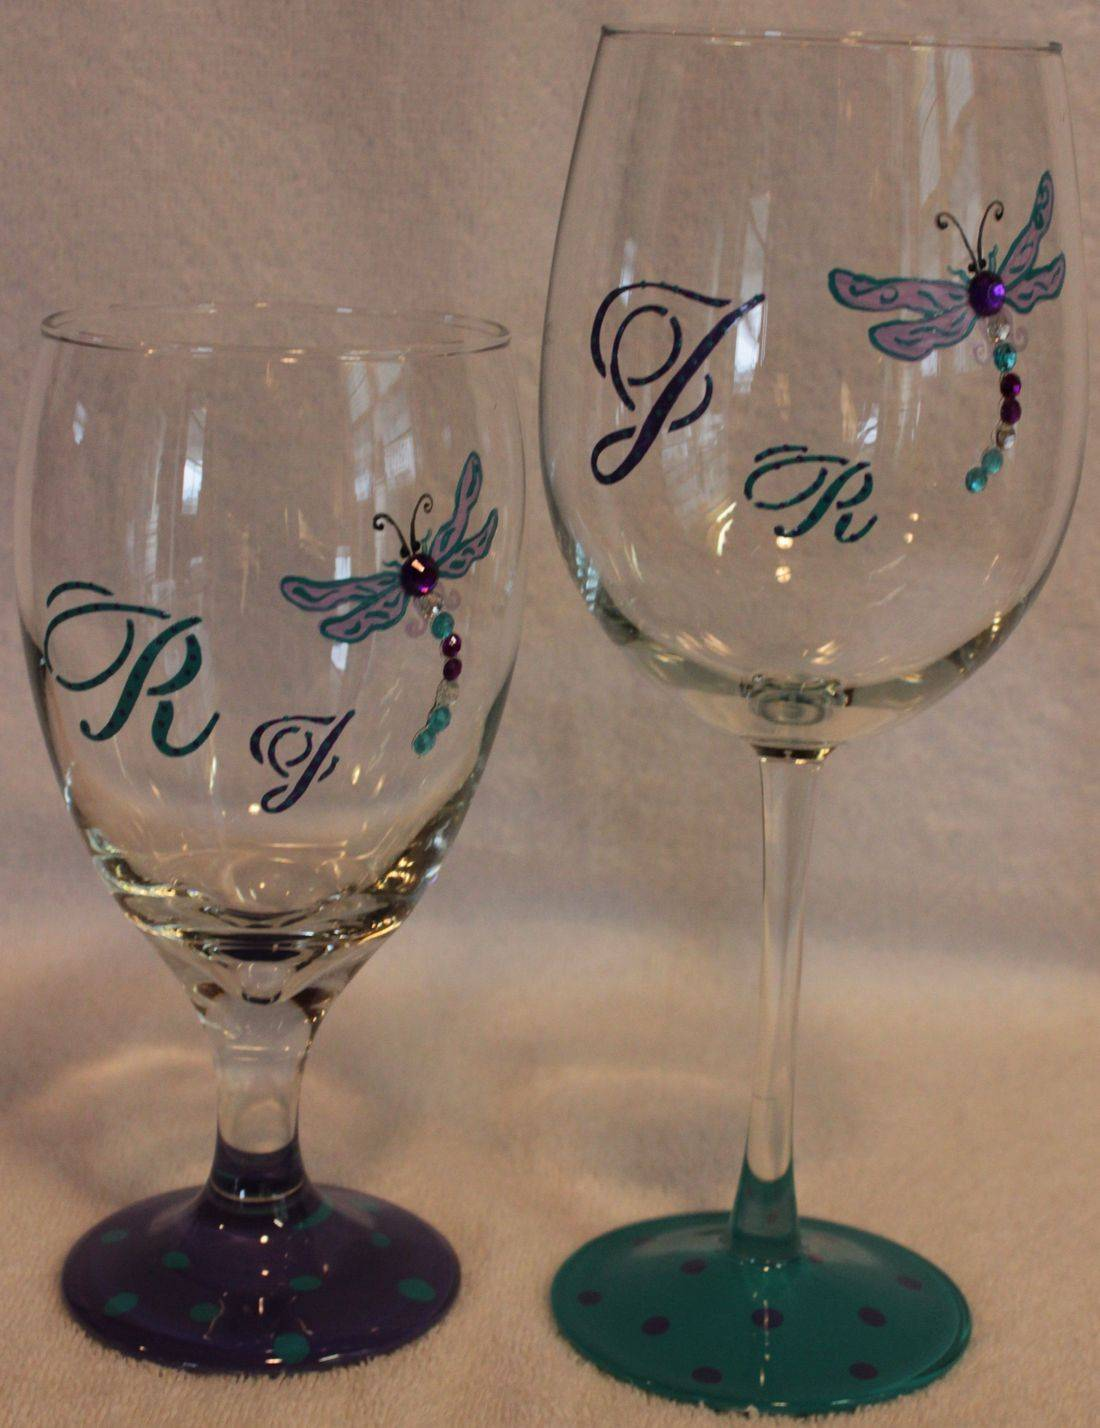 dragonfly wine glass, dragonfly water glass, dragonfly goblet